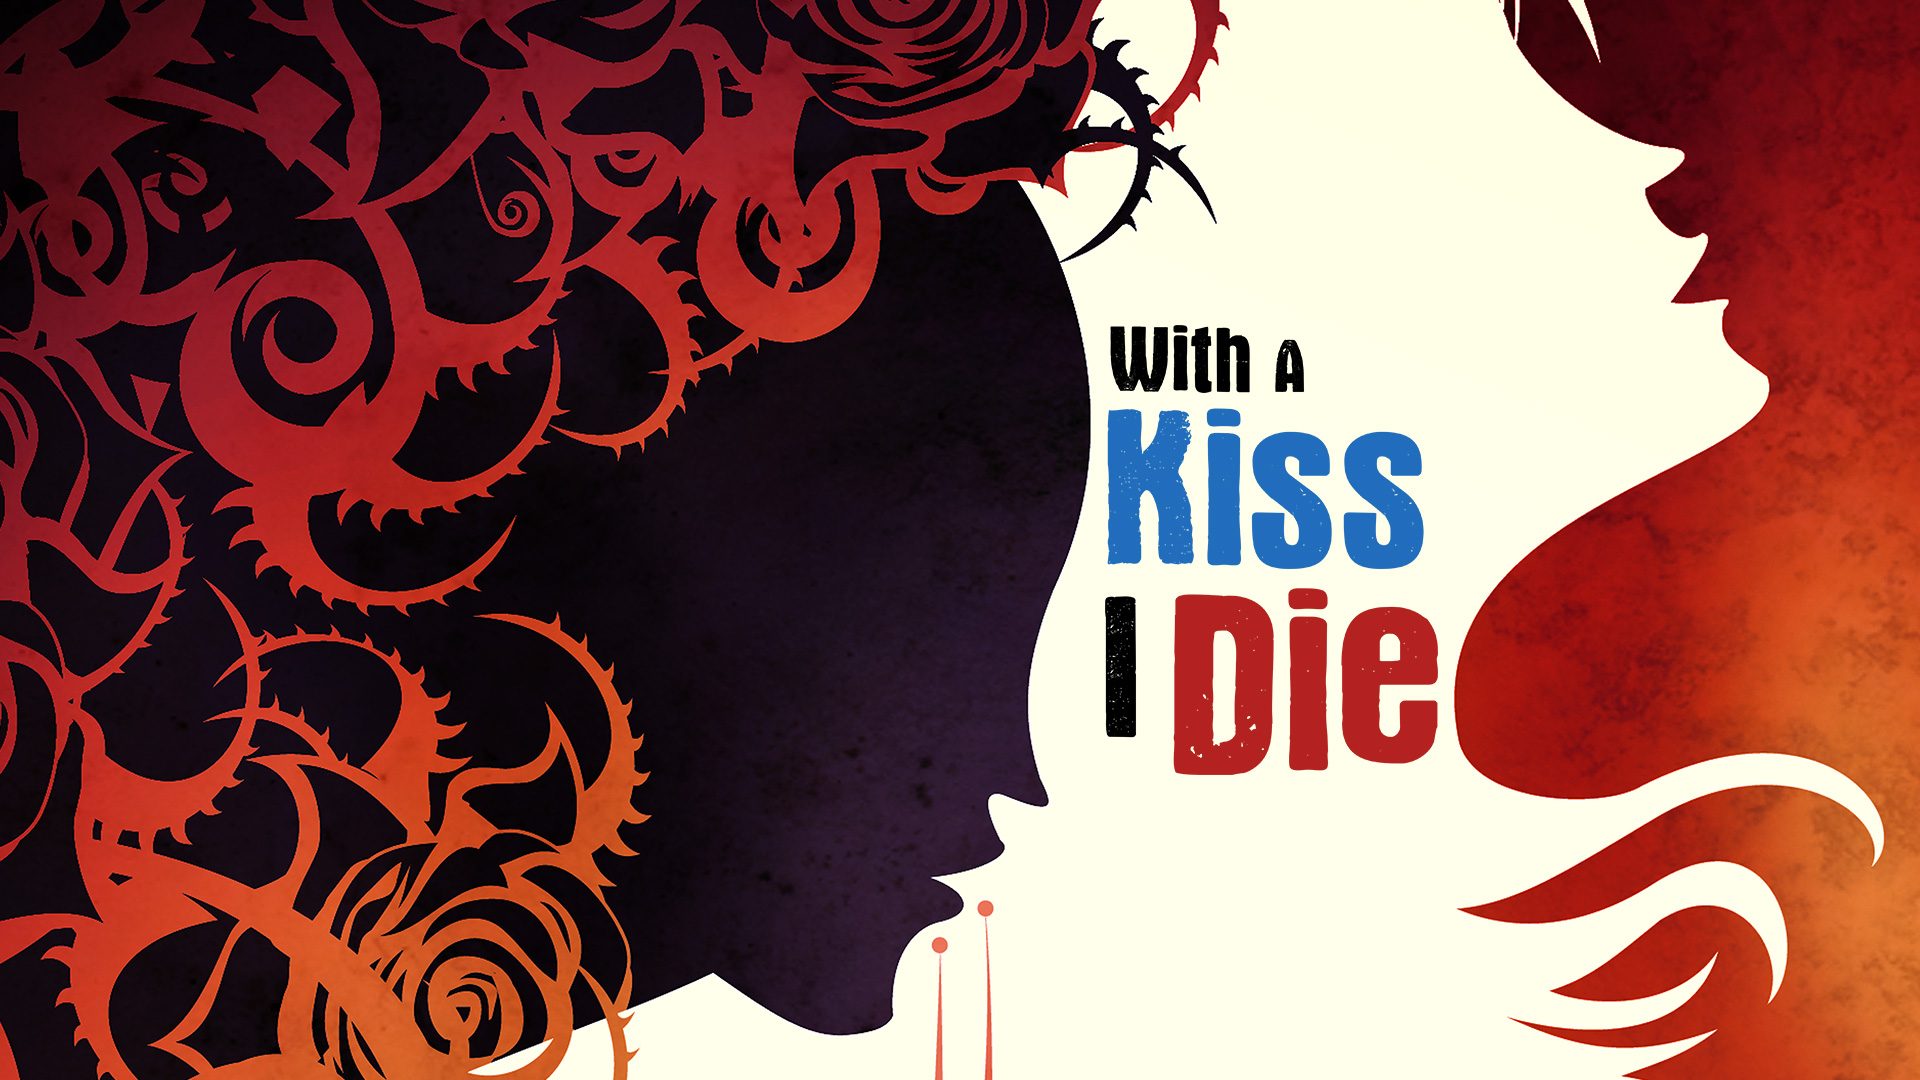 With a Kiss I Die